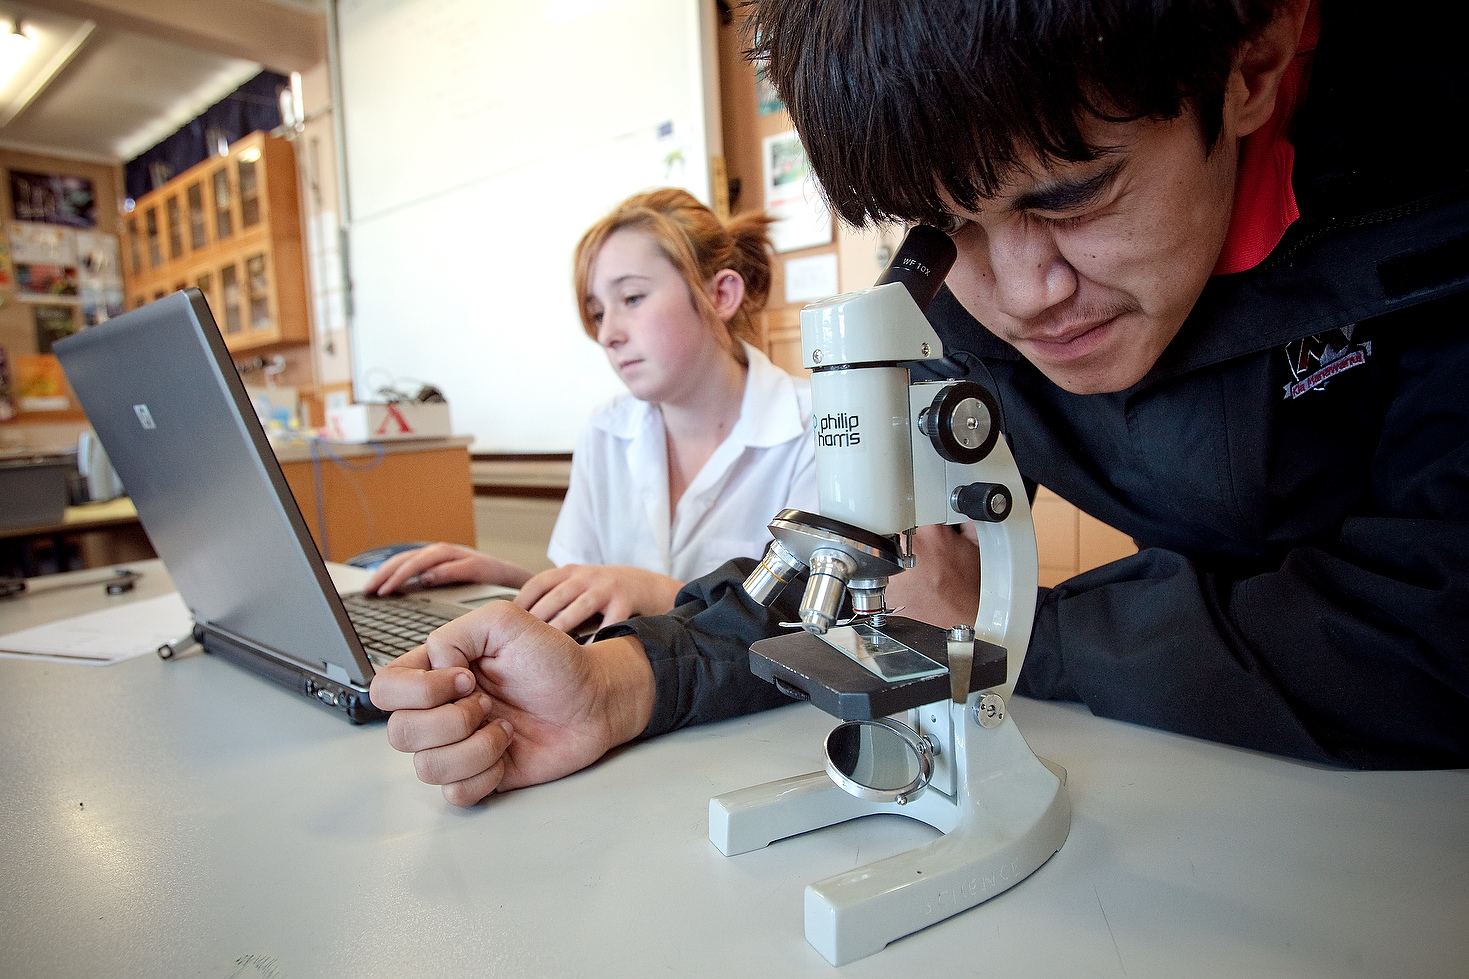 Students at a microscope and laptop